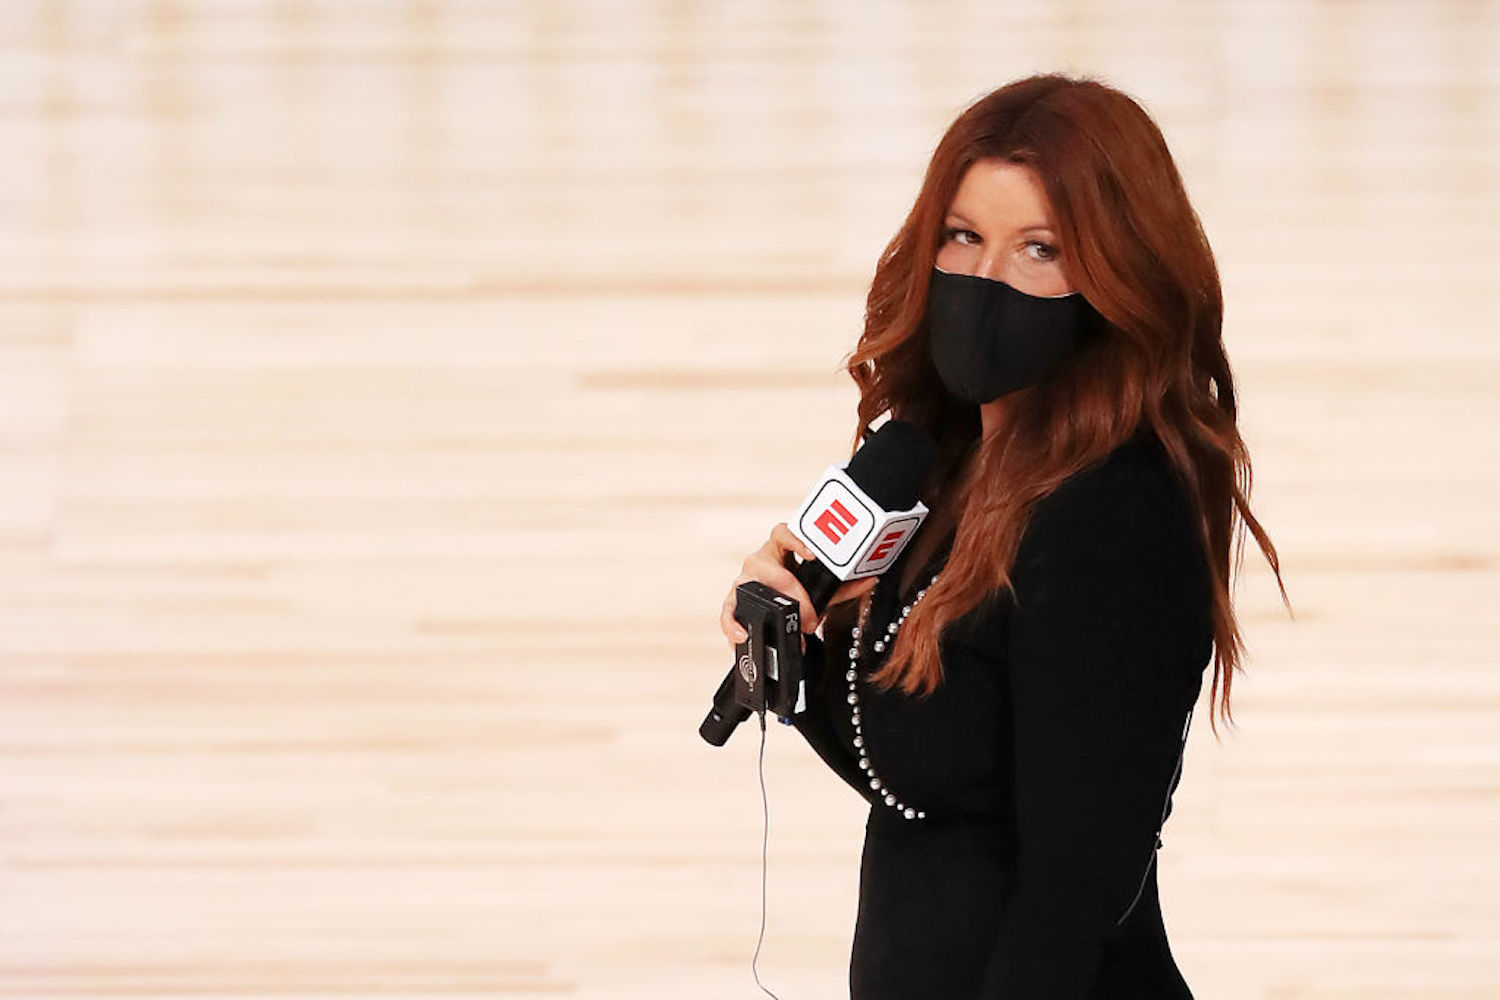 The NBA didn't honor Supreme Court Justice Ruth Bader Ginsburg at all after her death, and ESPN's Rachel Nichols wants answers.